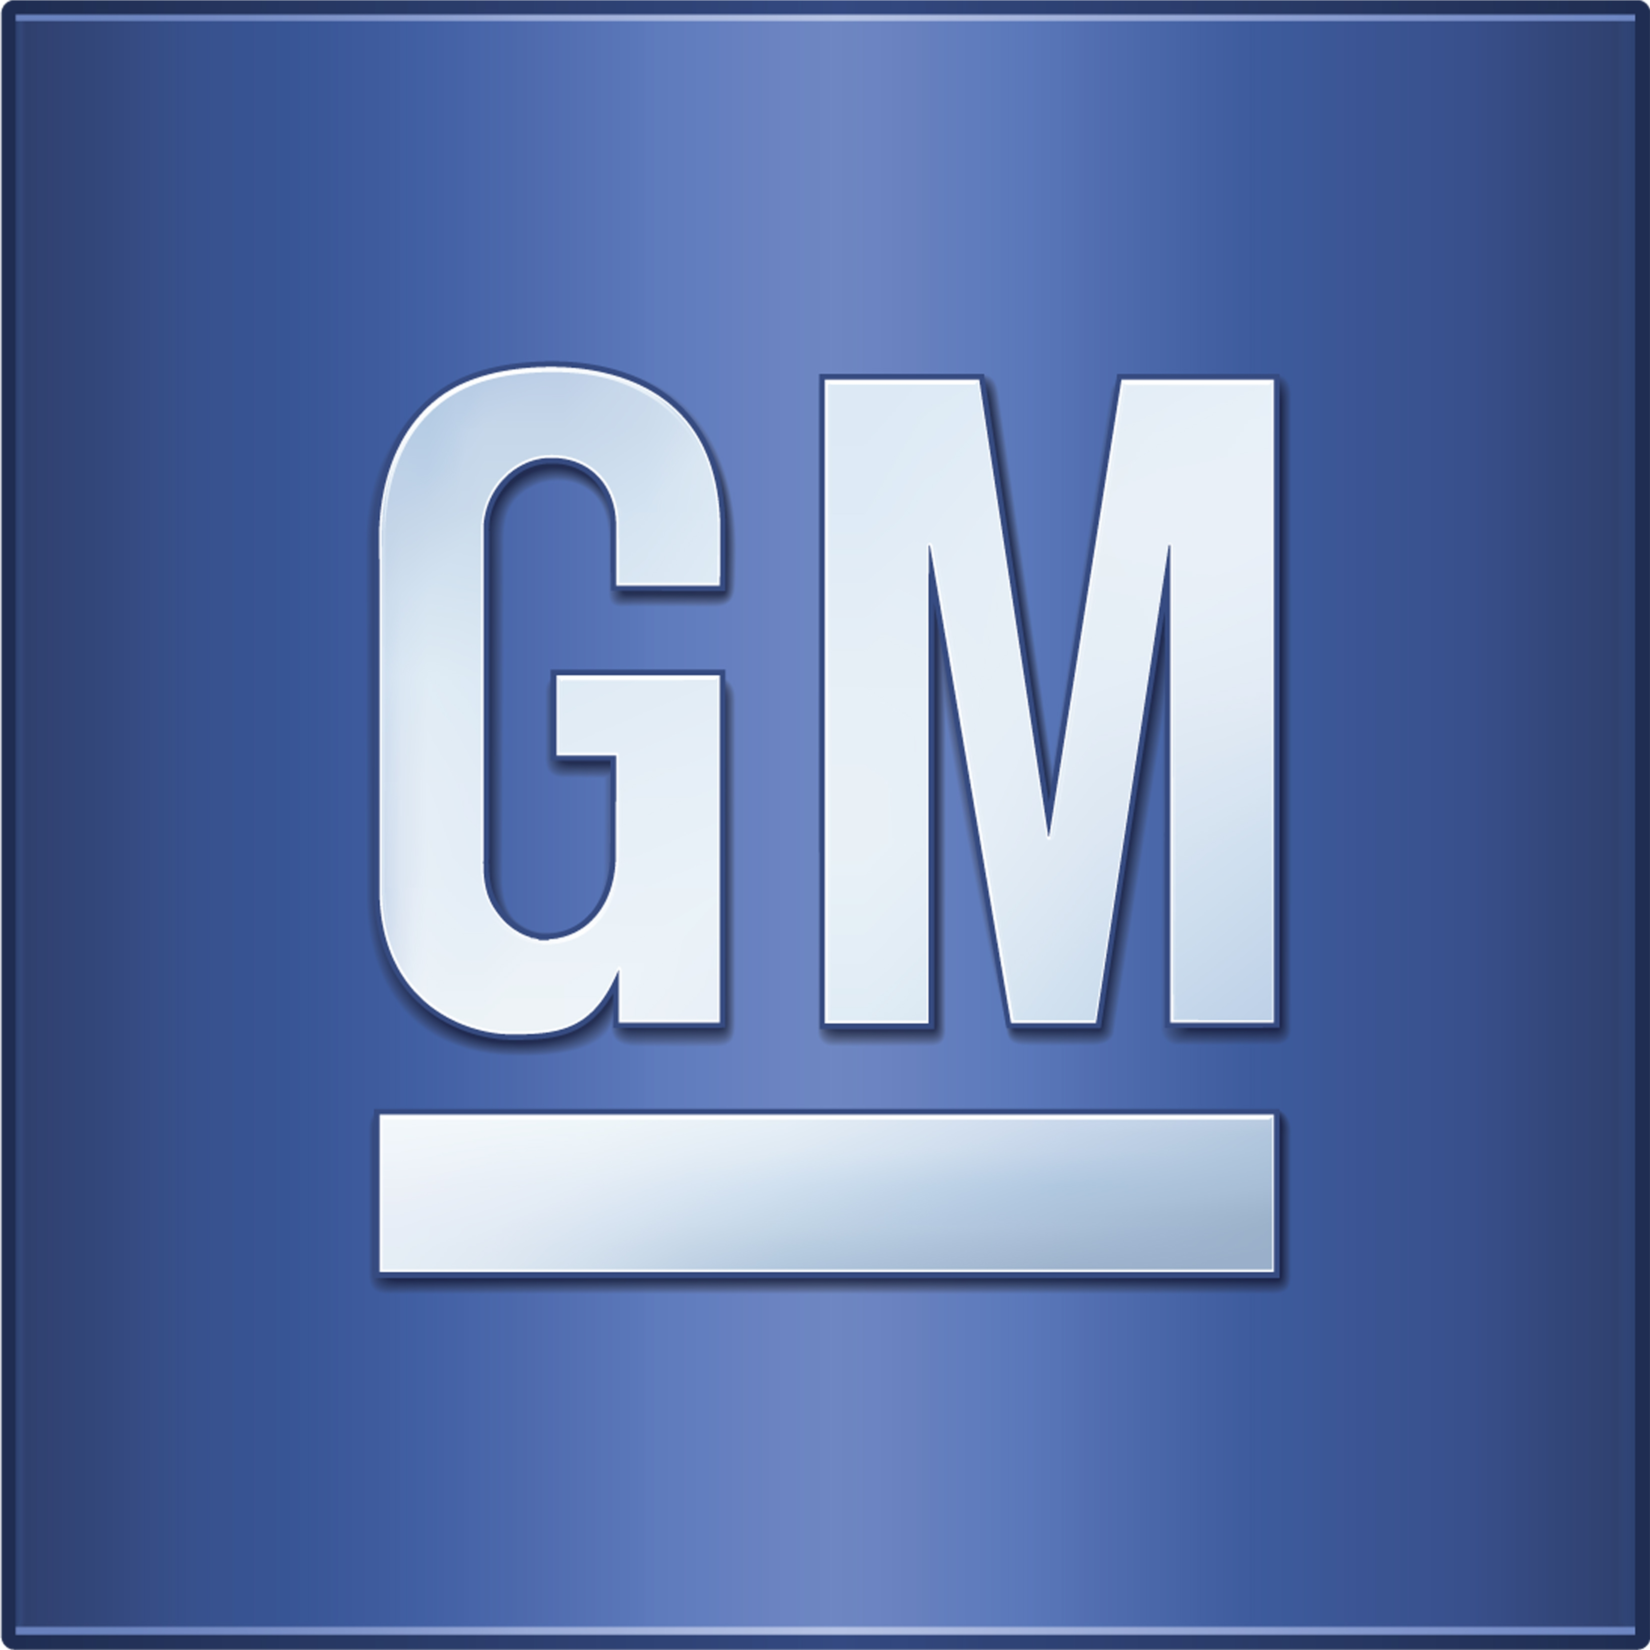 General Motors - Austin IT Innovation Center Company Logo